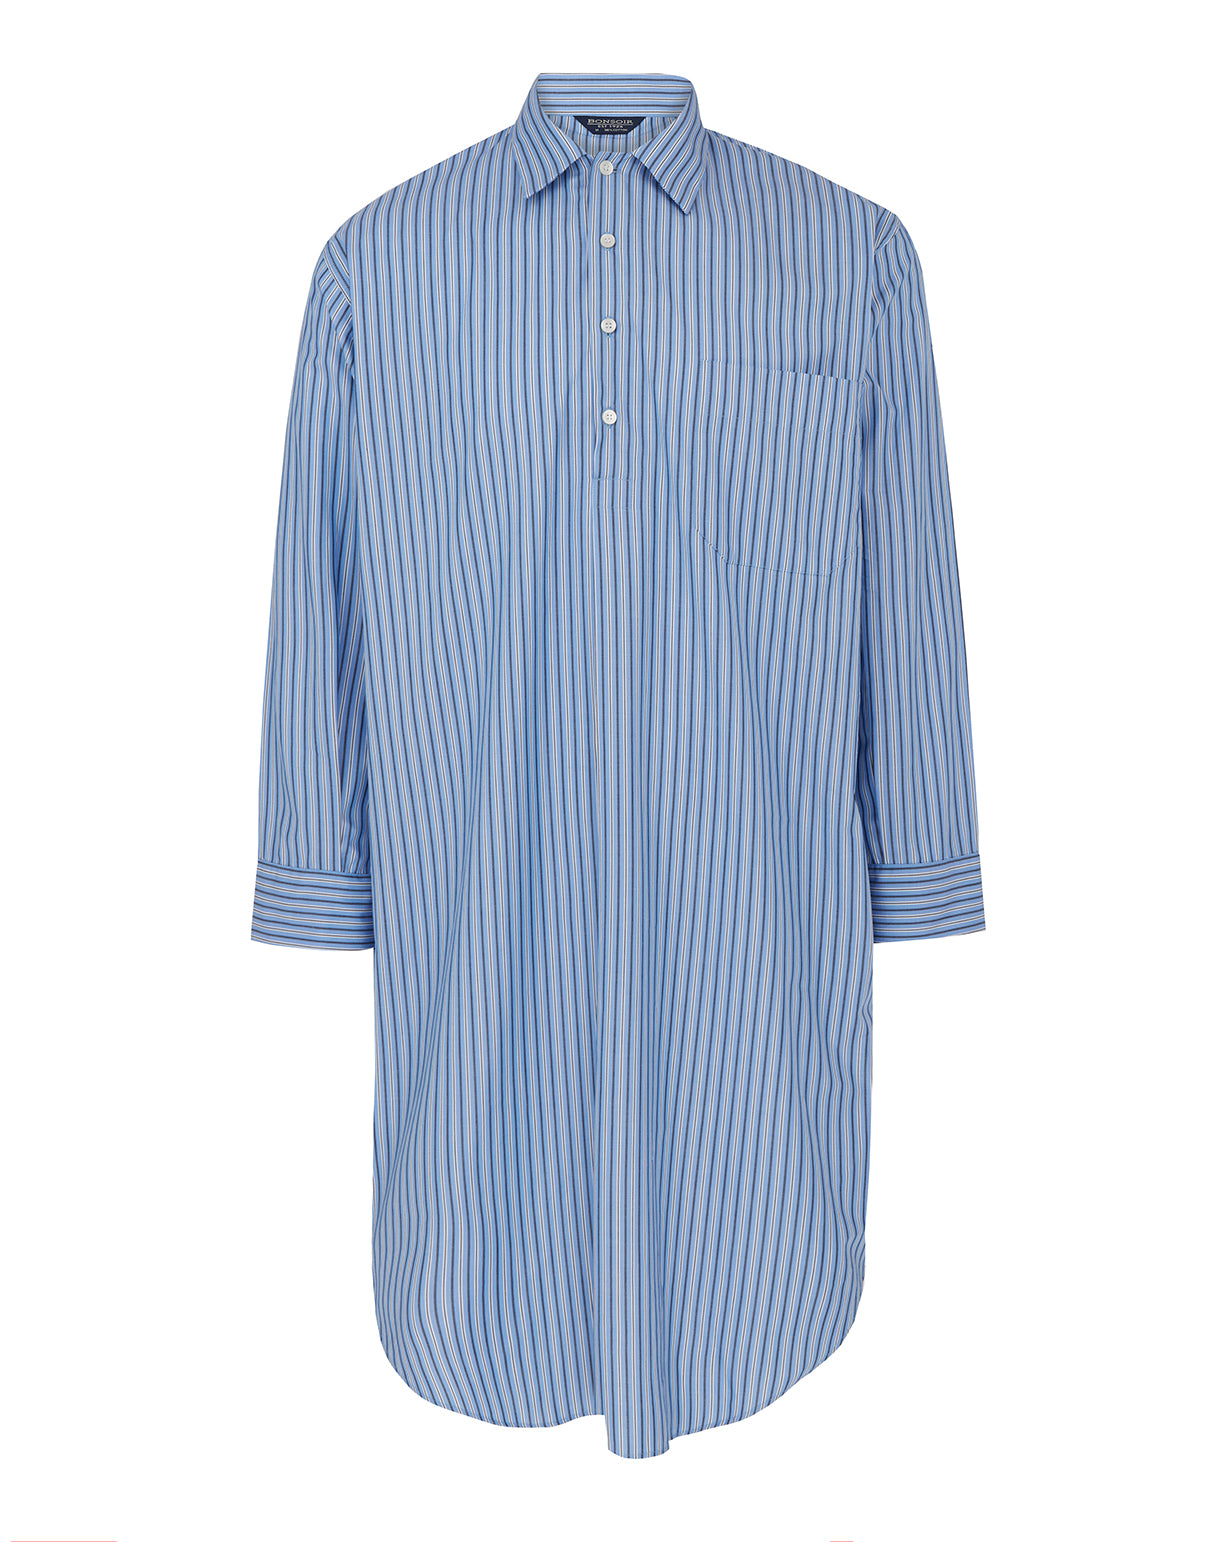 Men's Classic Cotton Nightshirt - A275